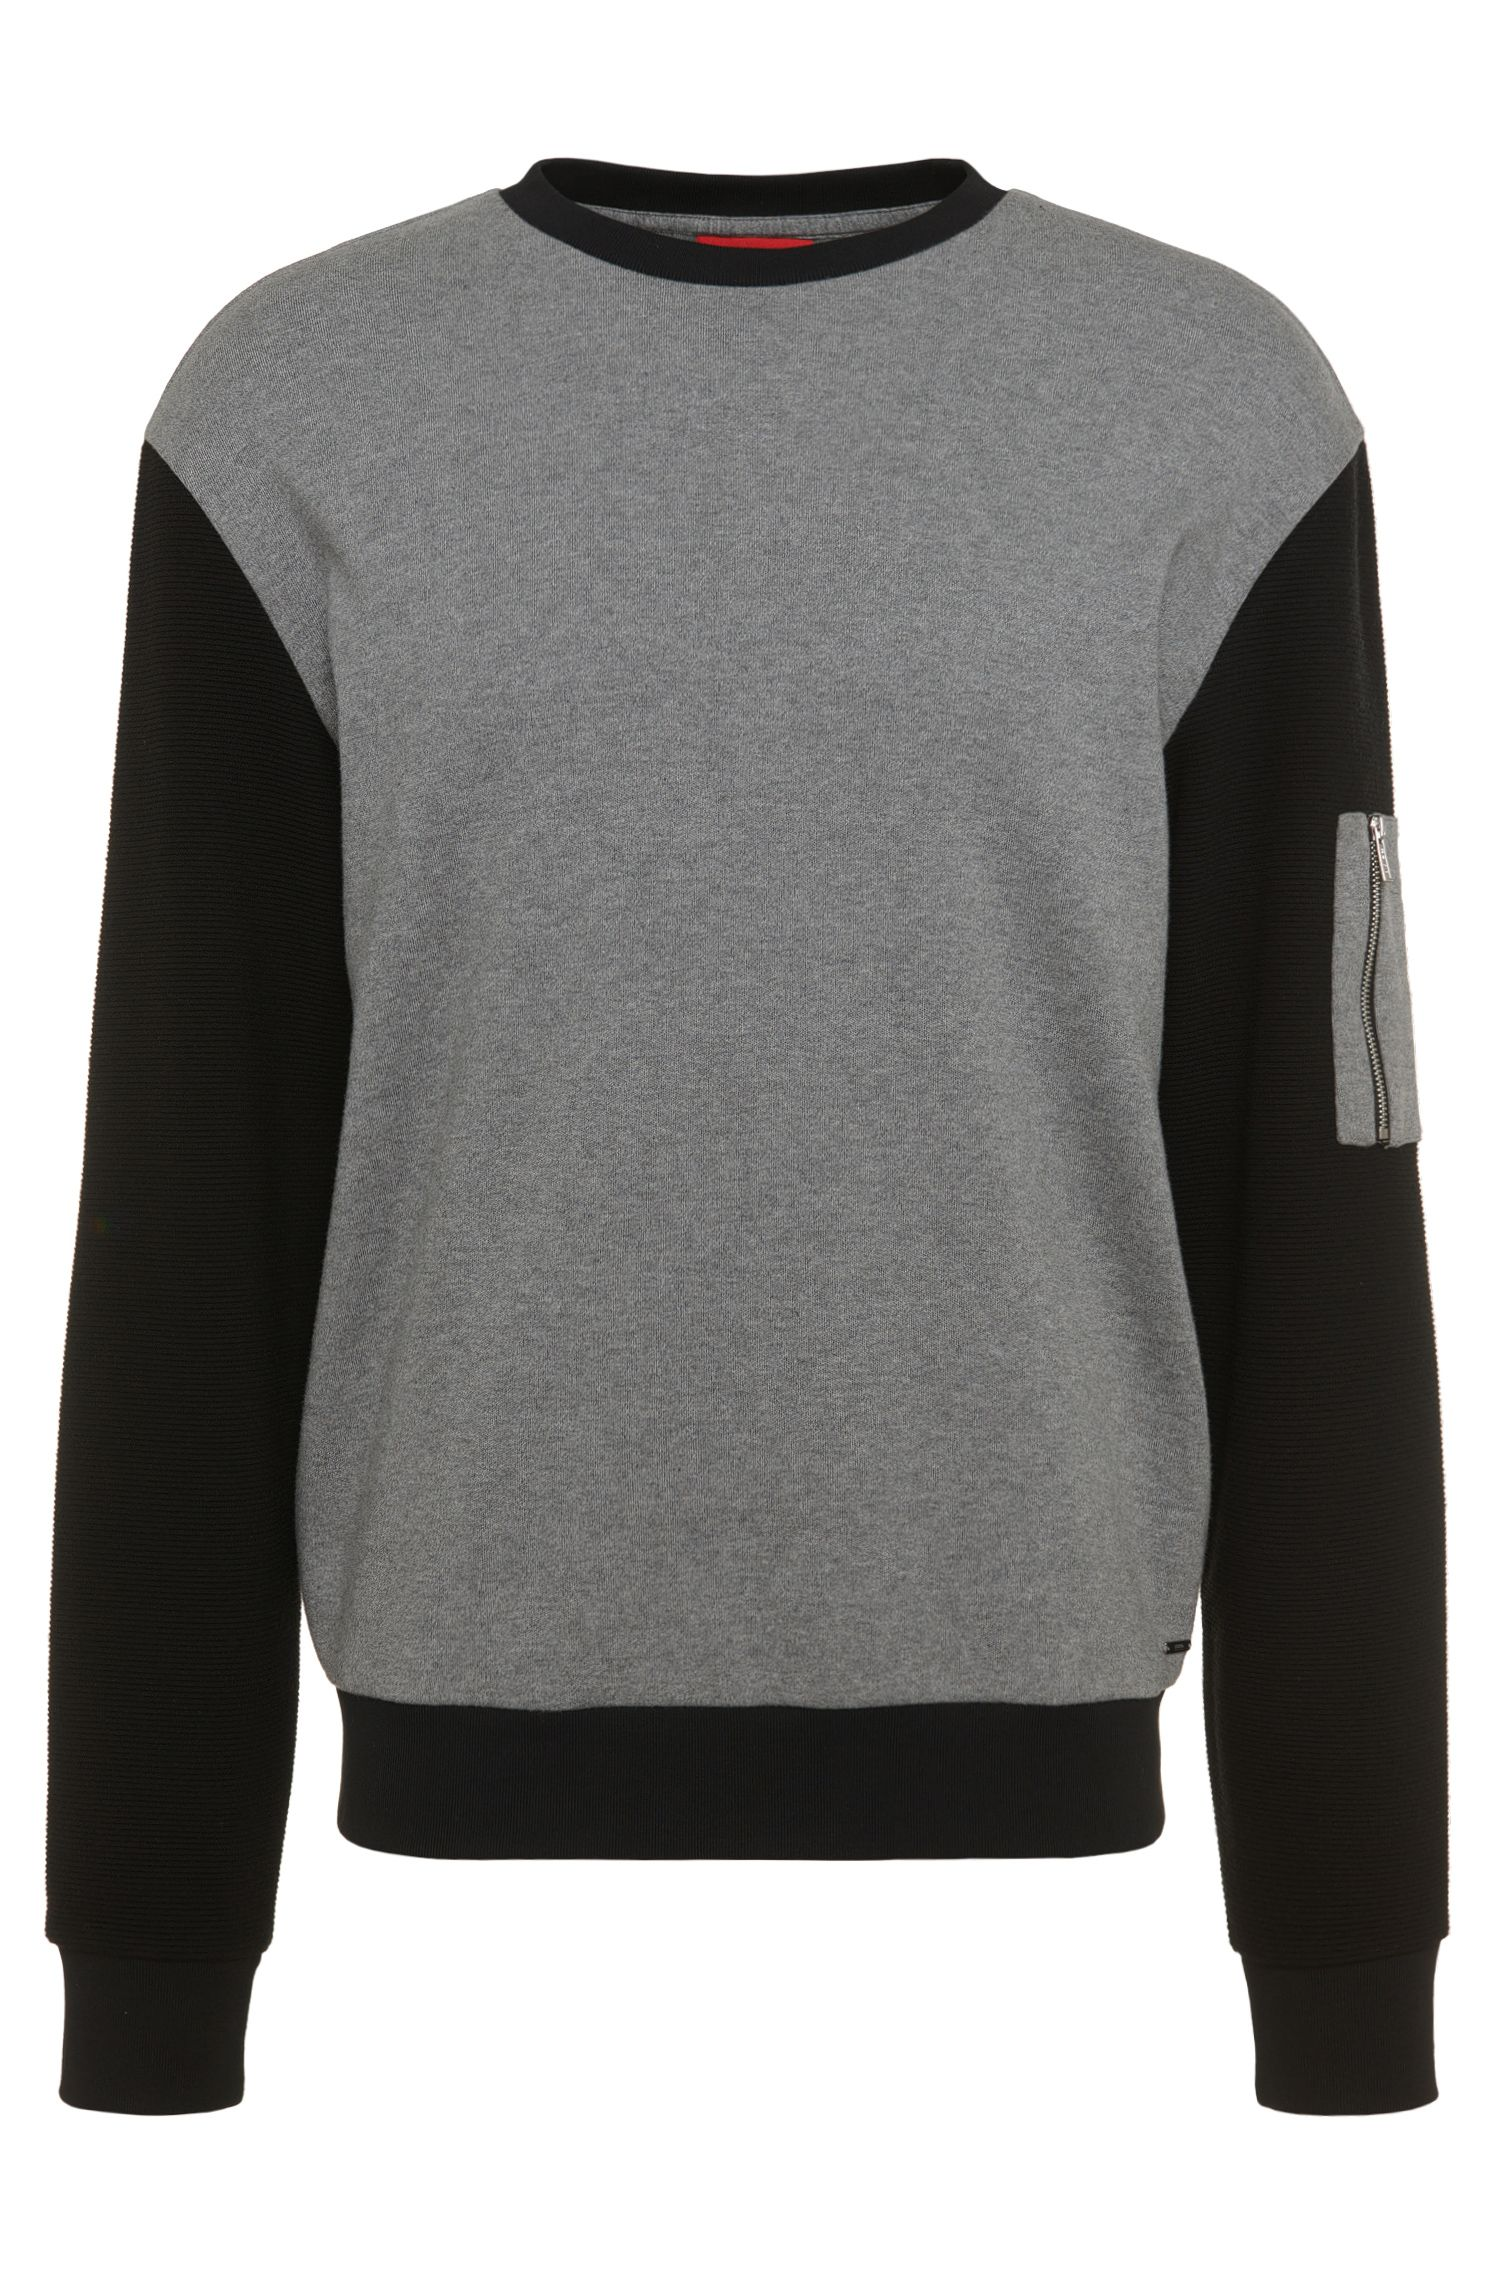 Sweat-shirt Loose Fit en coton bicolore : « Danremo »